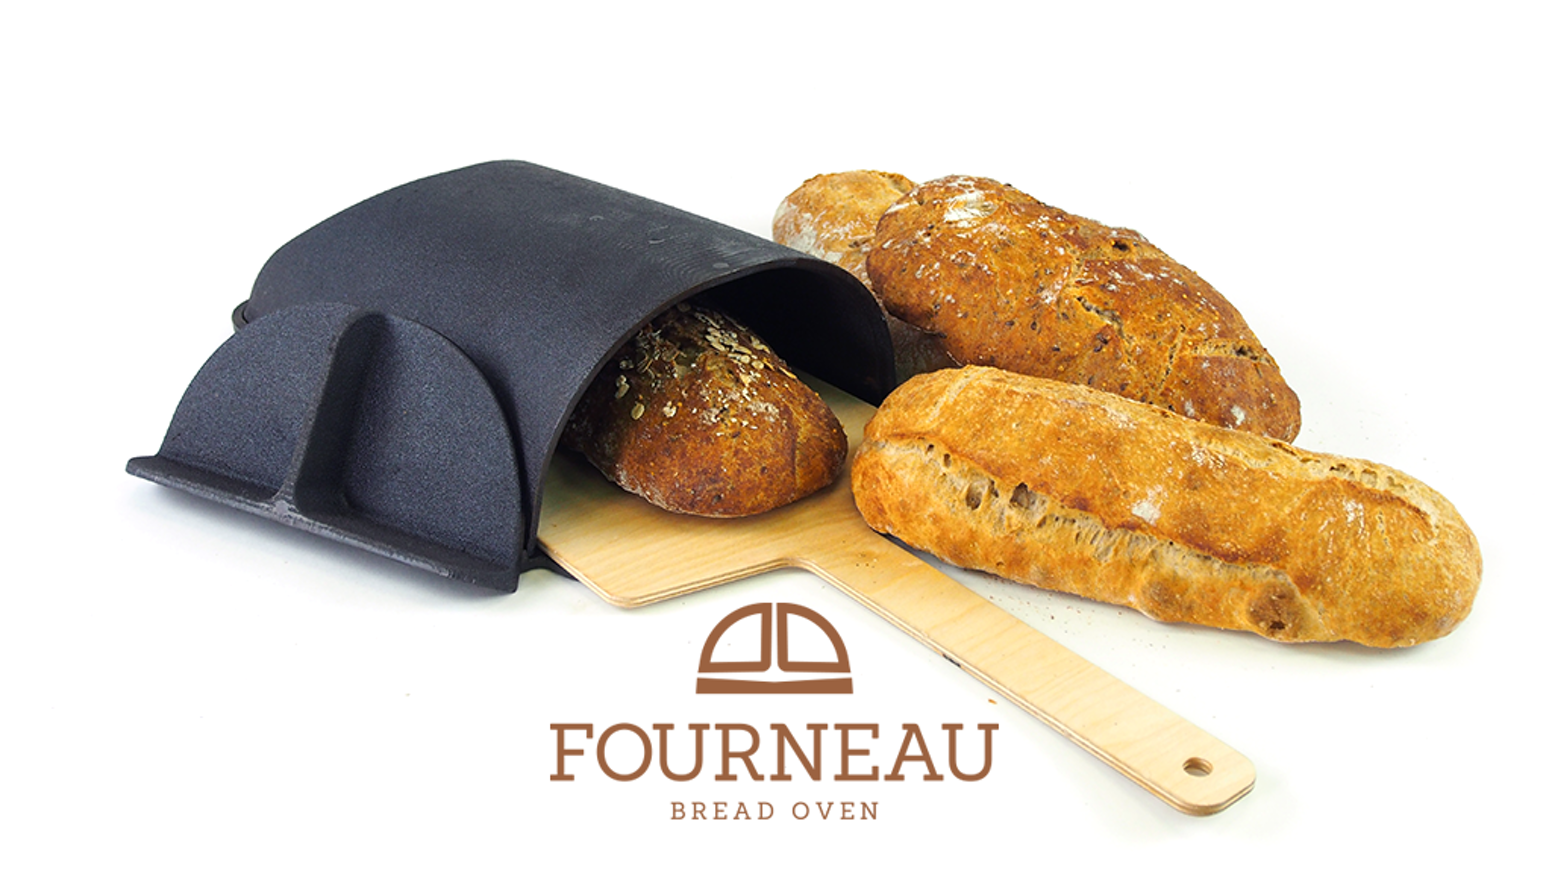 The ultimate tool to help you bake the most beautiful and most delicious loaf of bread at home. Patent Pending.